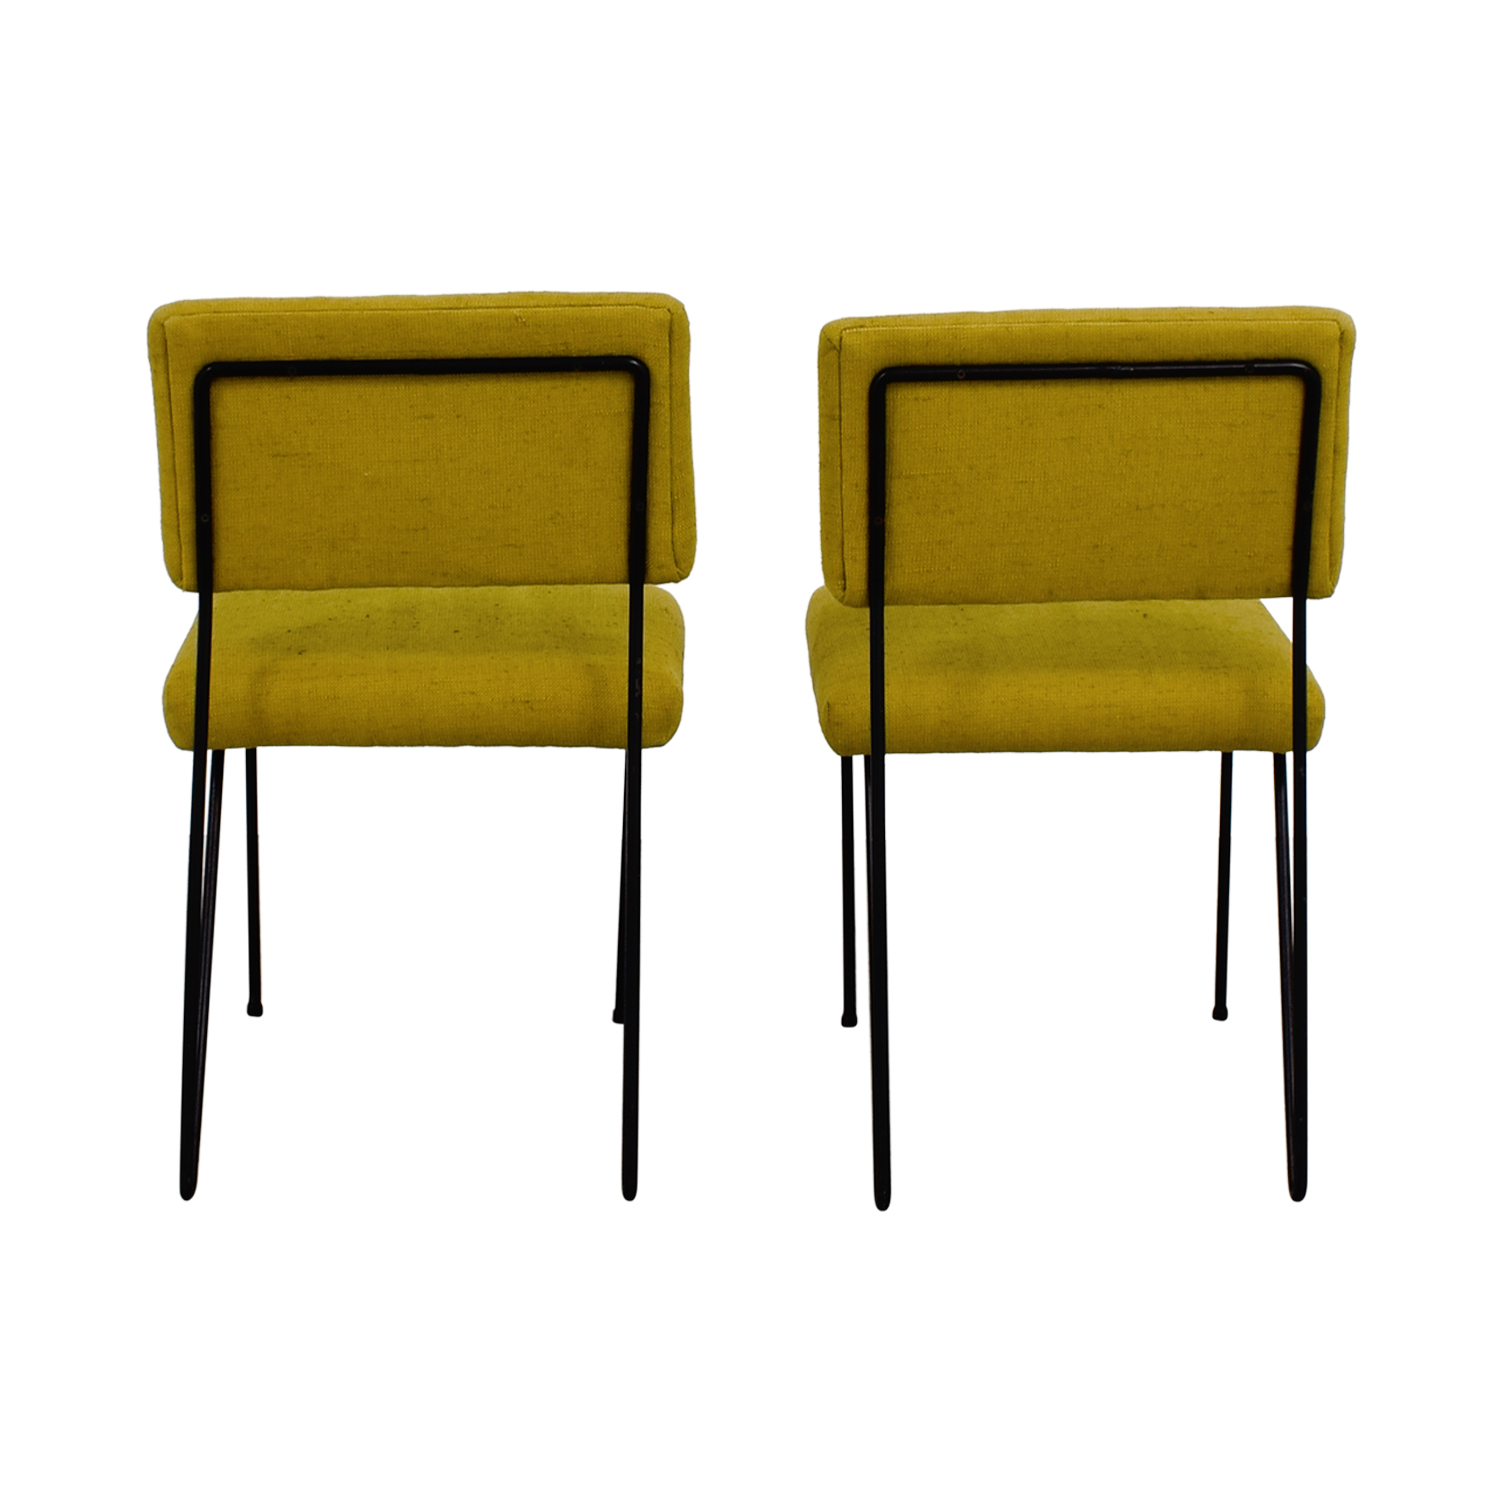 Furniture Masters Furniture Masters Green Fabric and Metal Chairs used